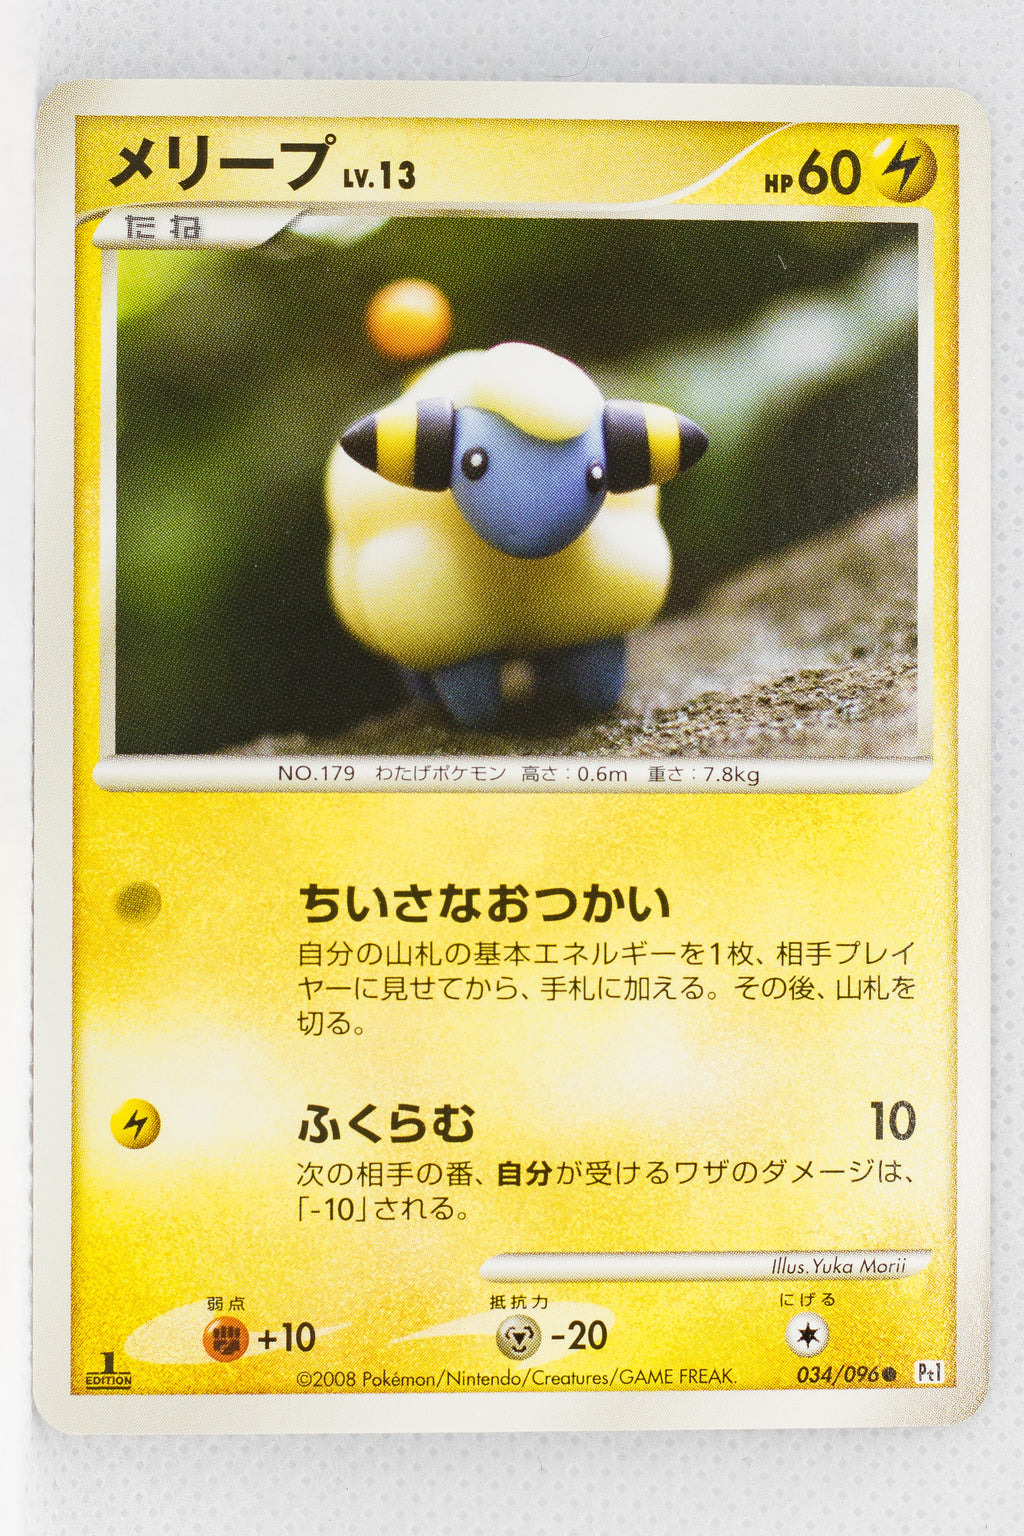 Pt1 Galactic Conquest 034/096 Mareep 1st Edition